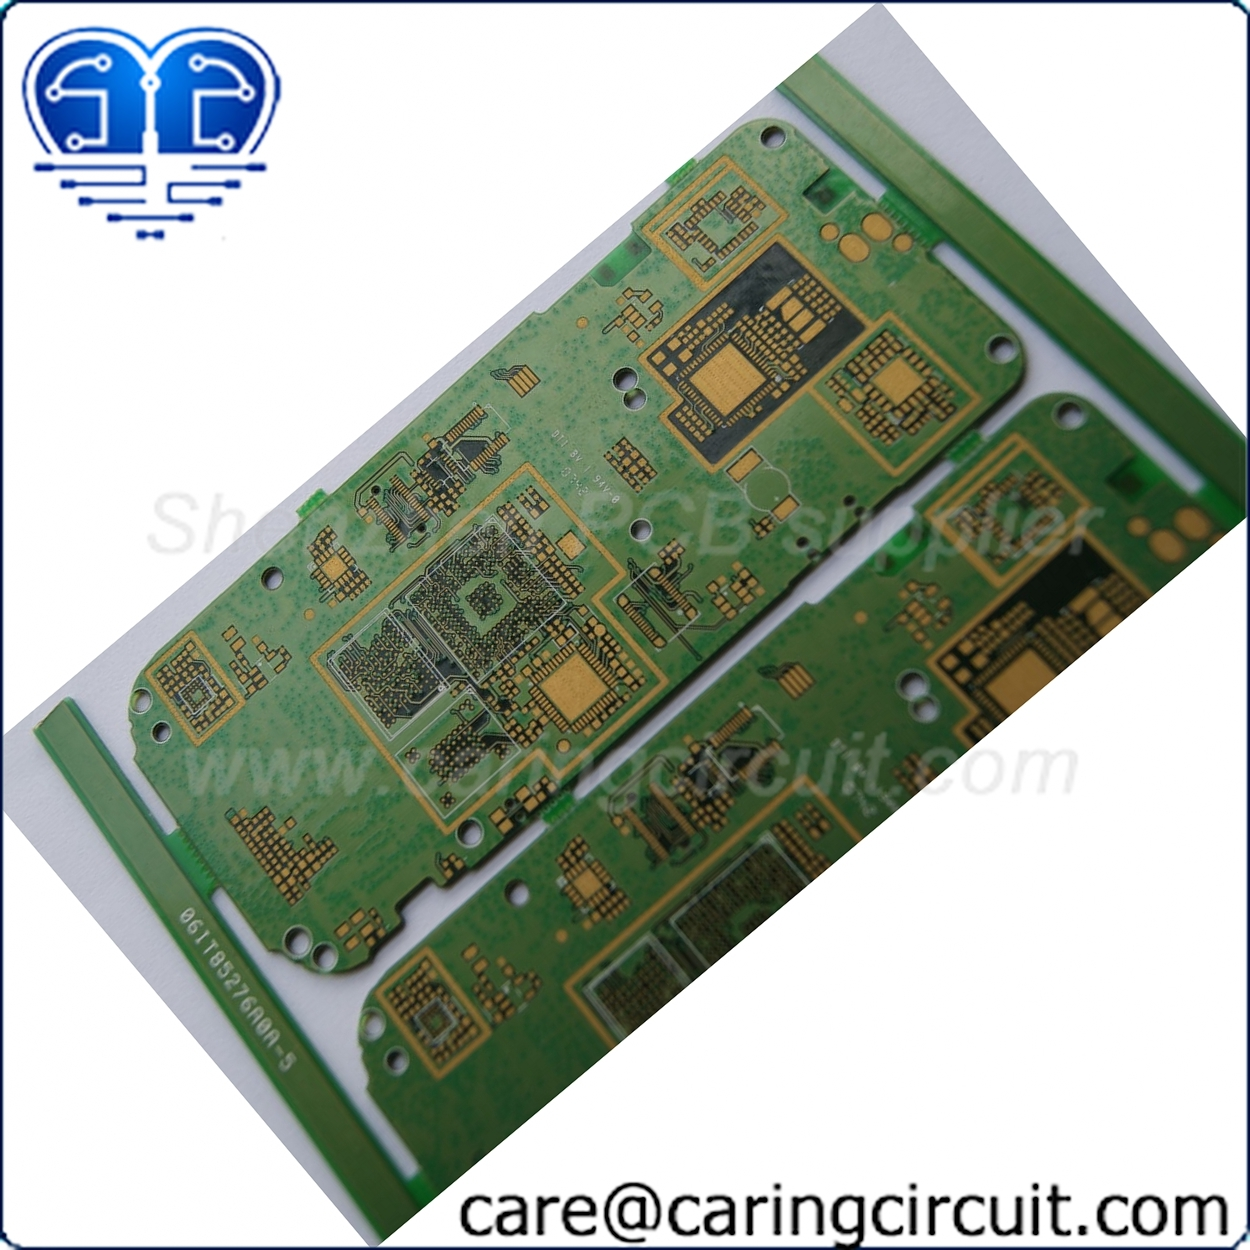 Fr4 Pcb Glass Fiber Circuit Boards Caring Flex Rigid Electro Plate Circuitry Dragon Smart Phone Products Manufacturers